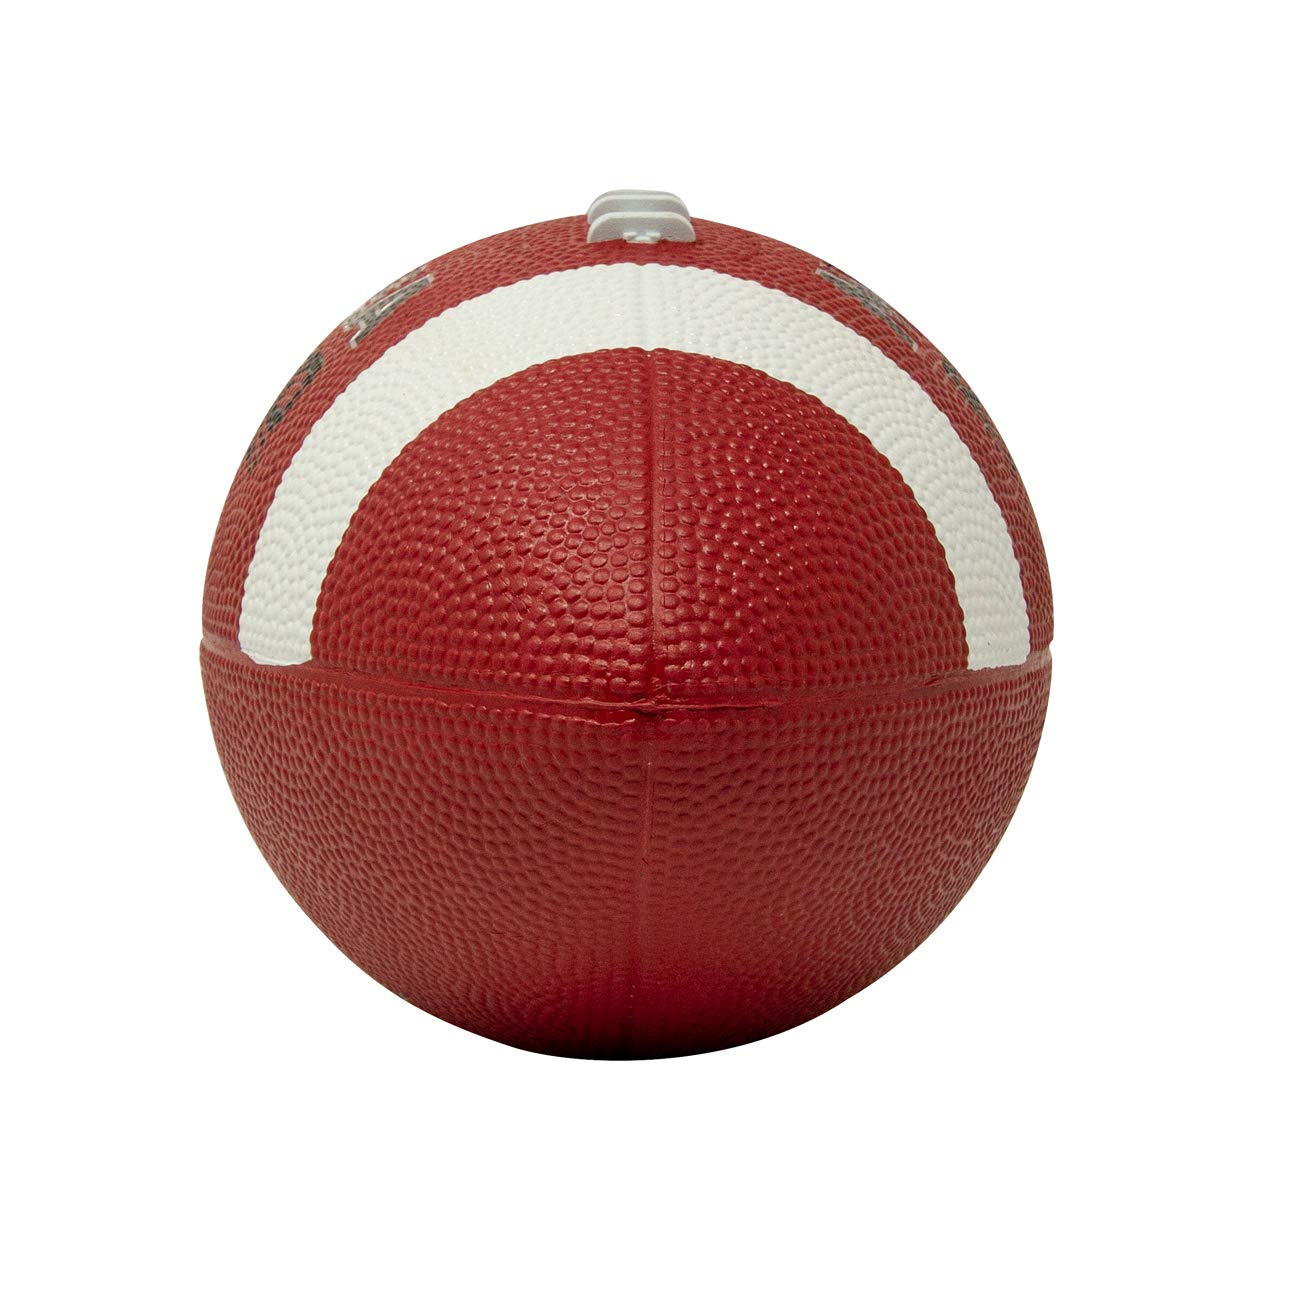 Mikasa F5000 Official Size Rubber Football